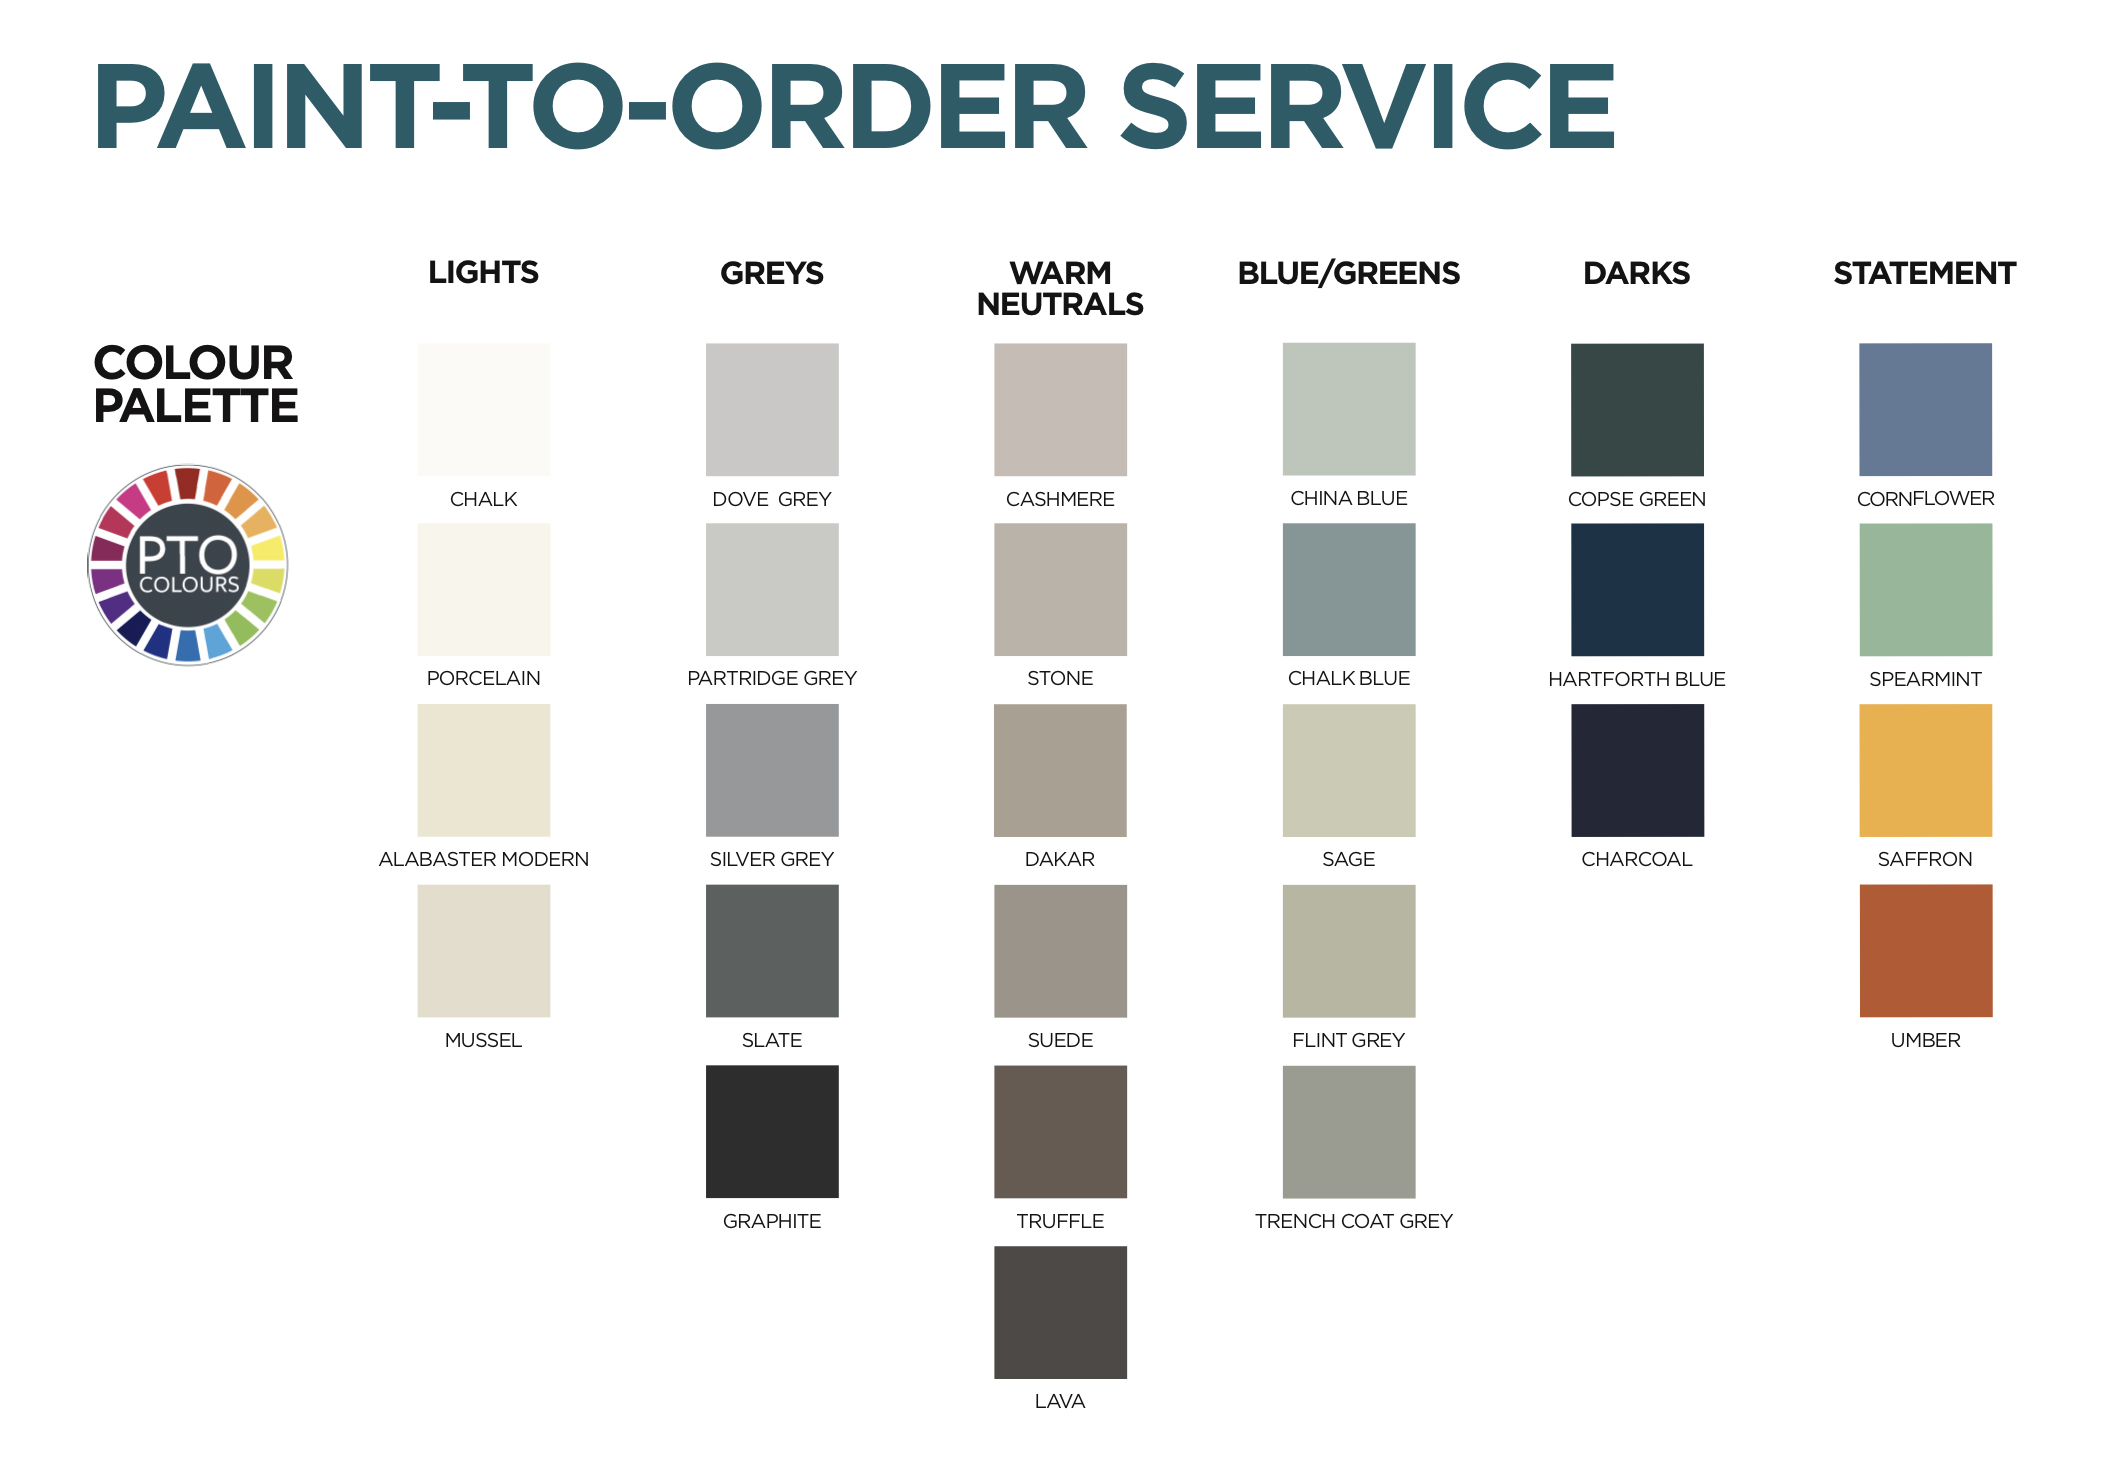 Paint To Order colours are available